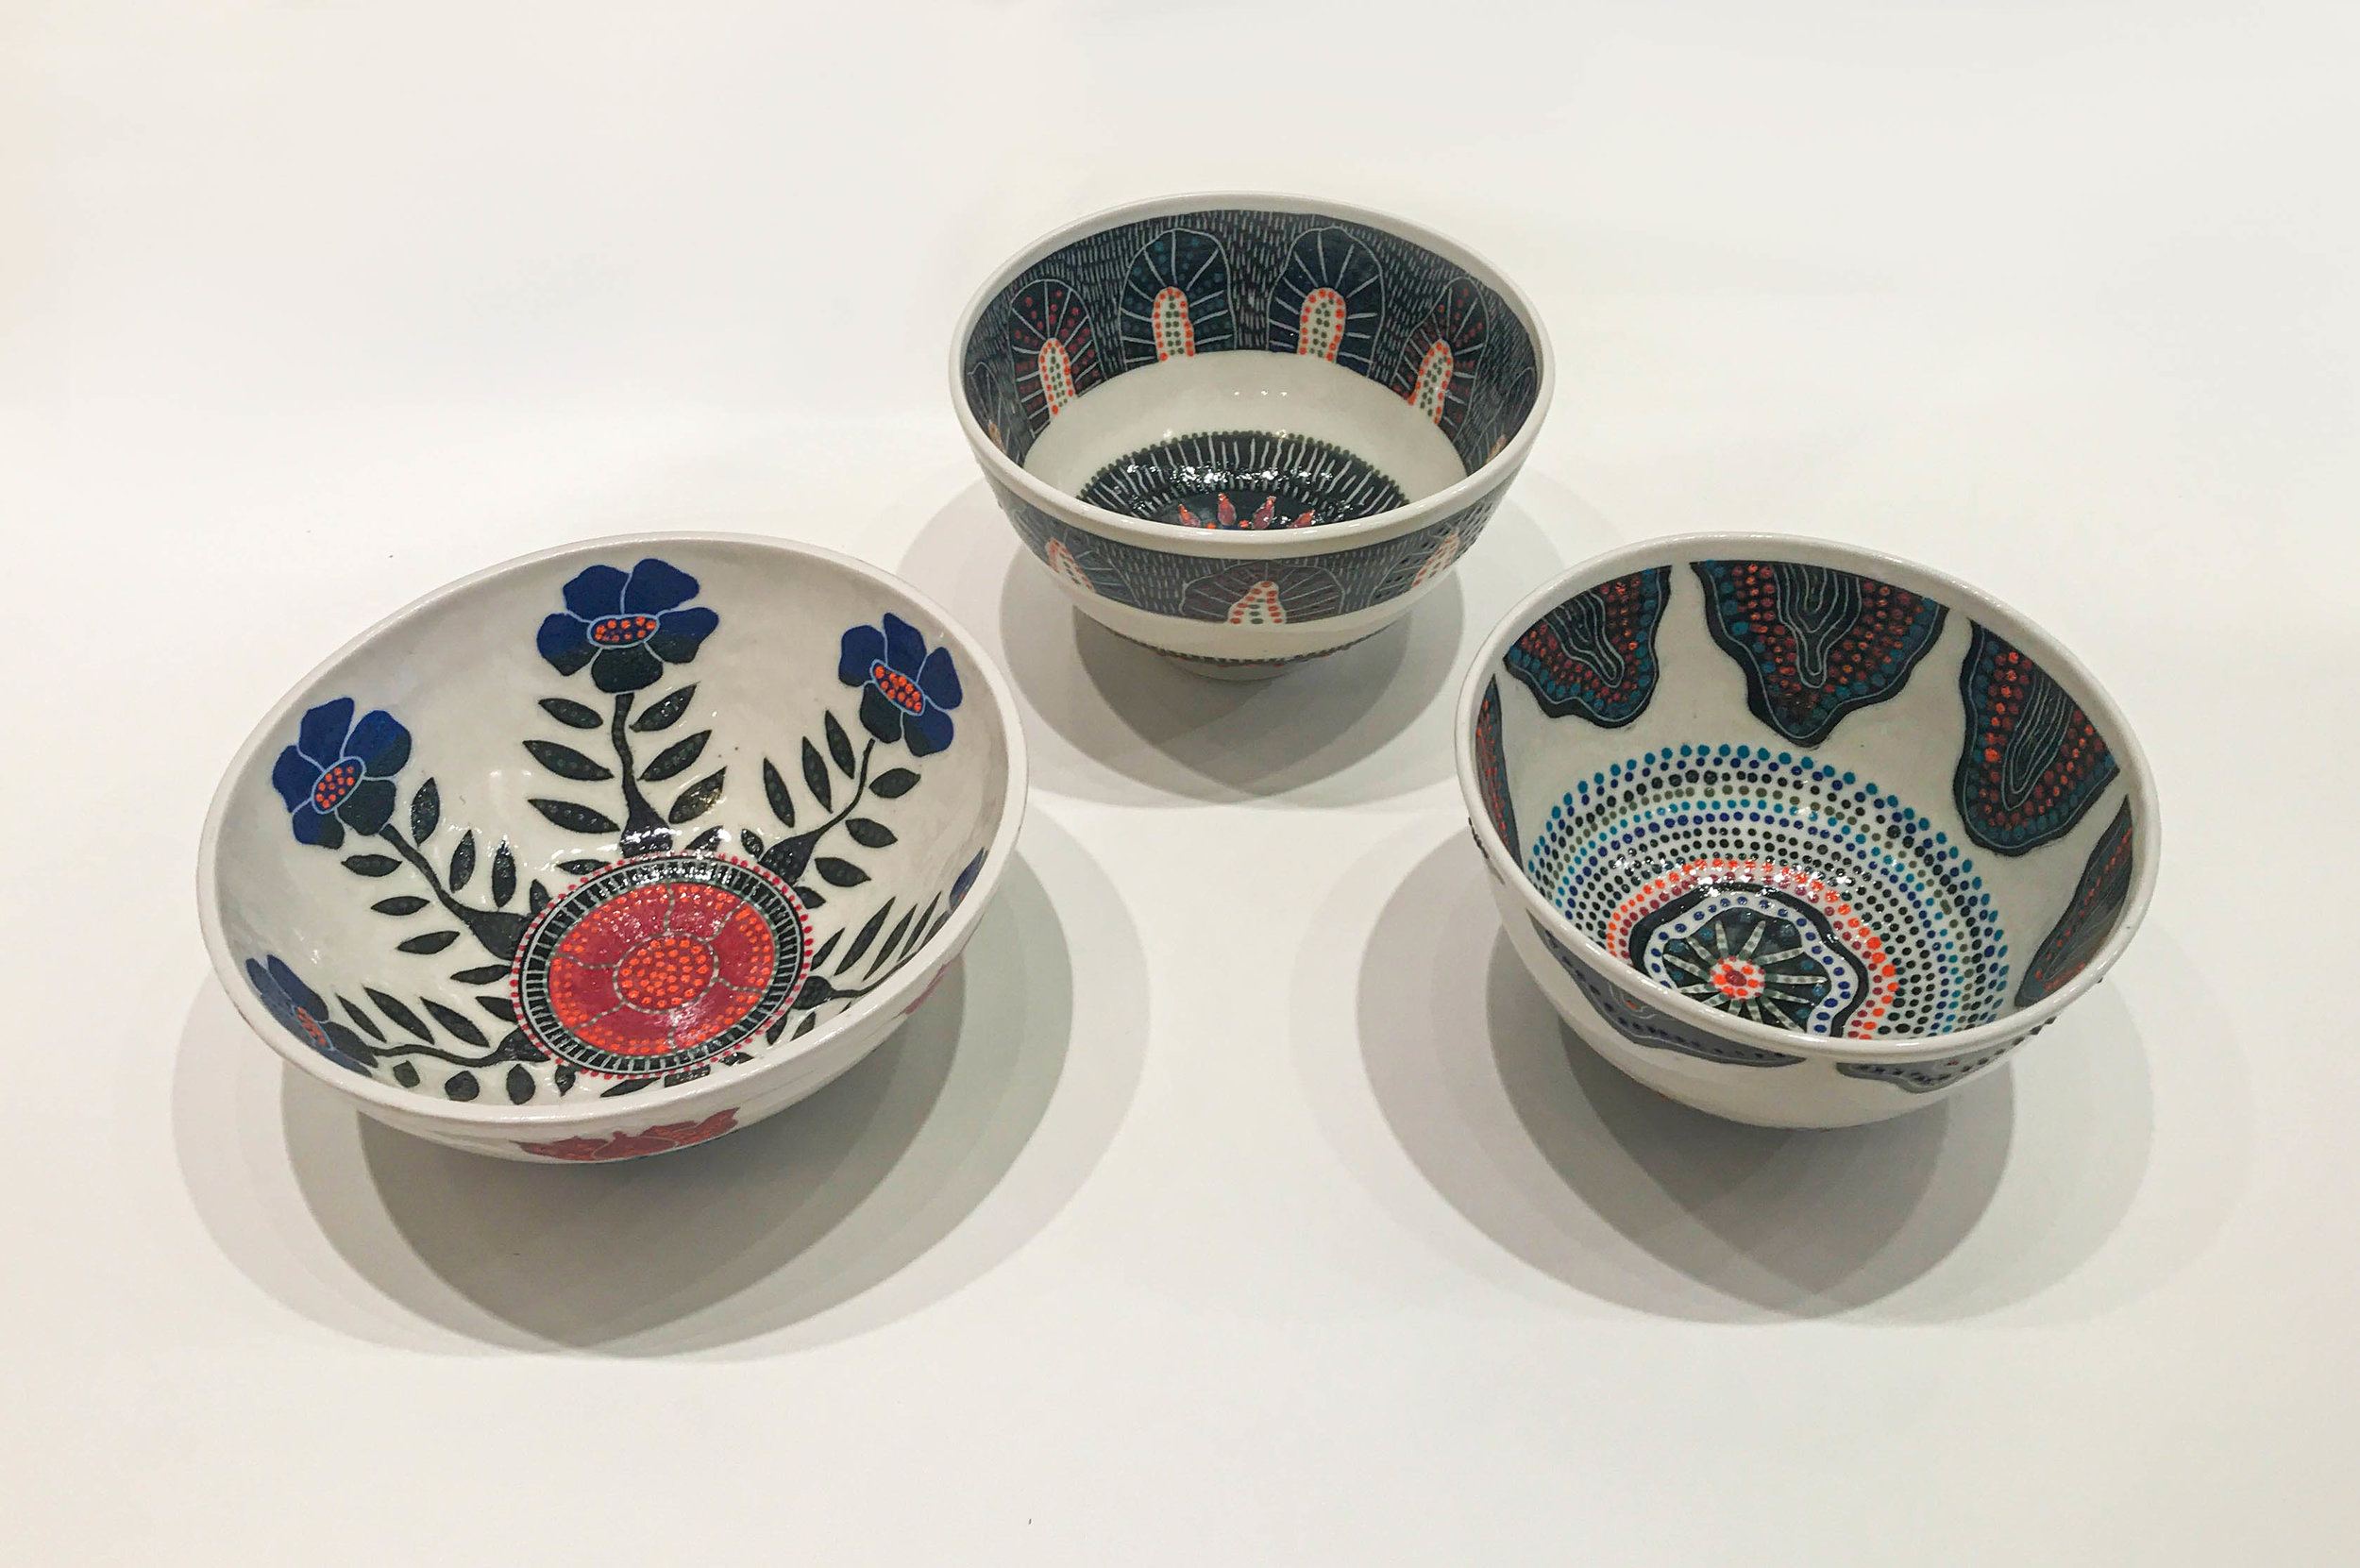 Sgraffito bowls, hand carved slip design on wheel thrown porcelain, $75 - $150